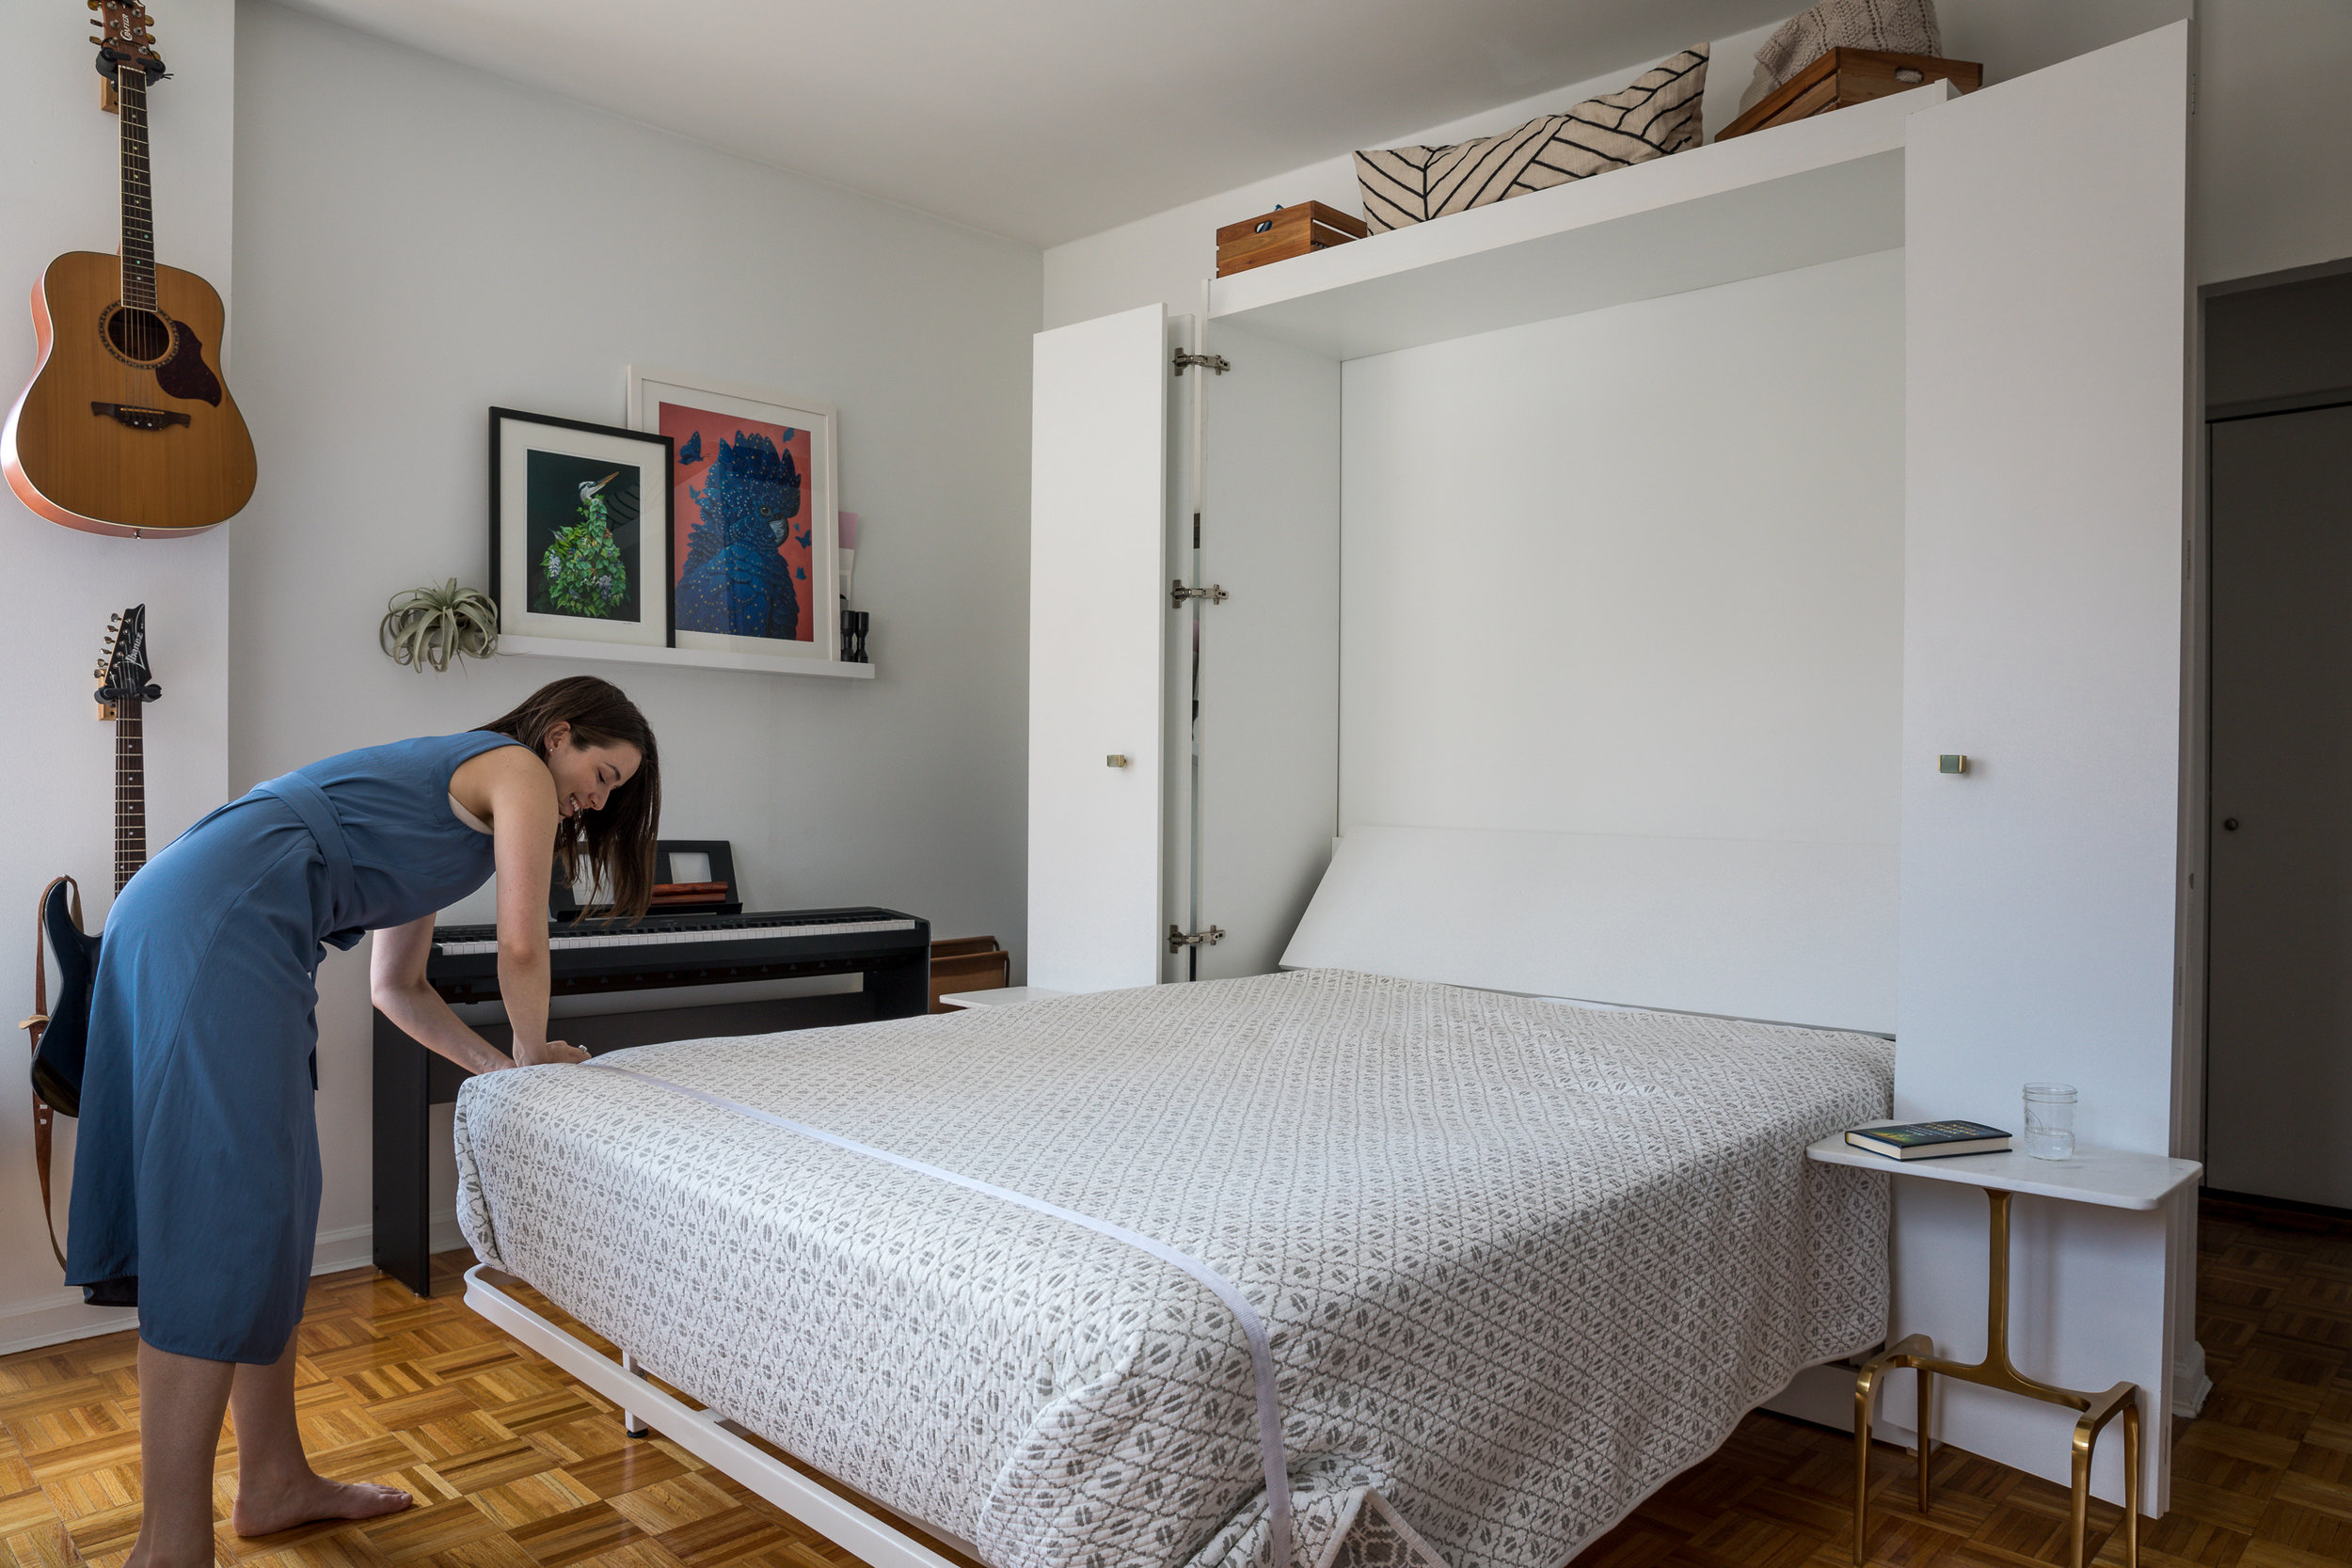 Wall Bed / Murphy Bed - clipping the mattress strap